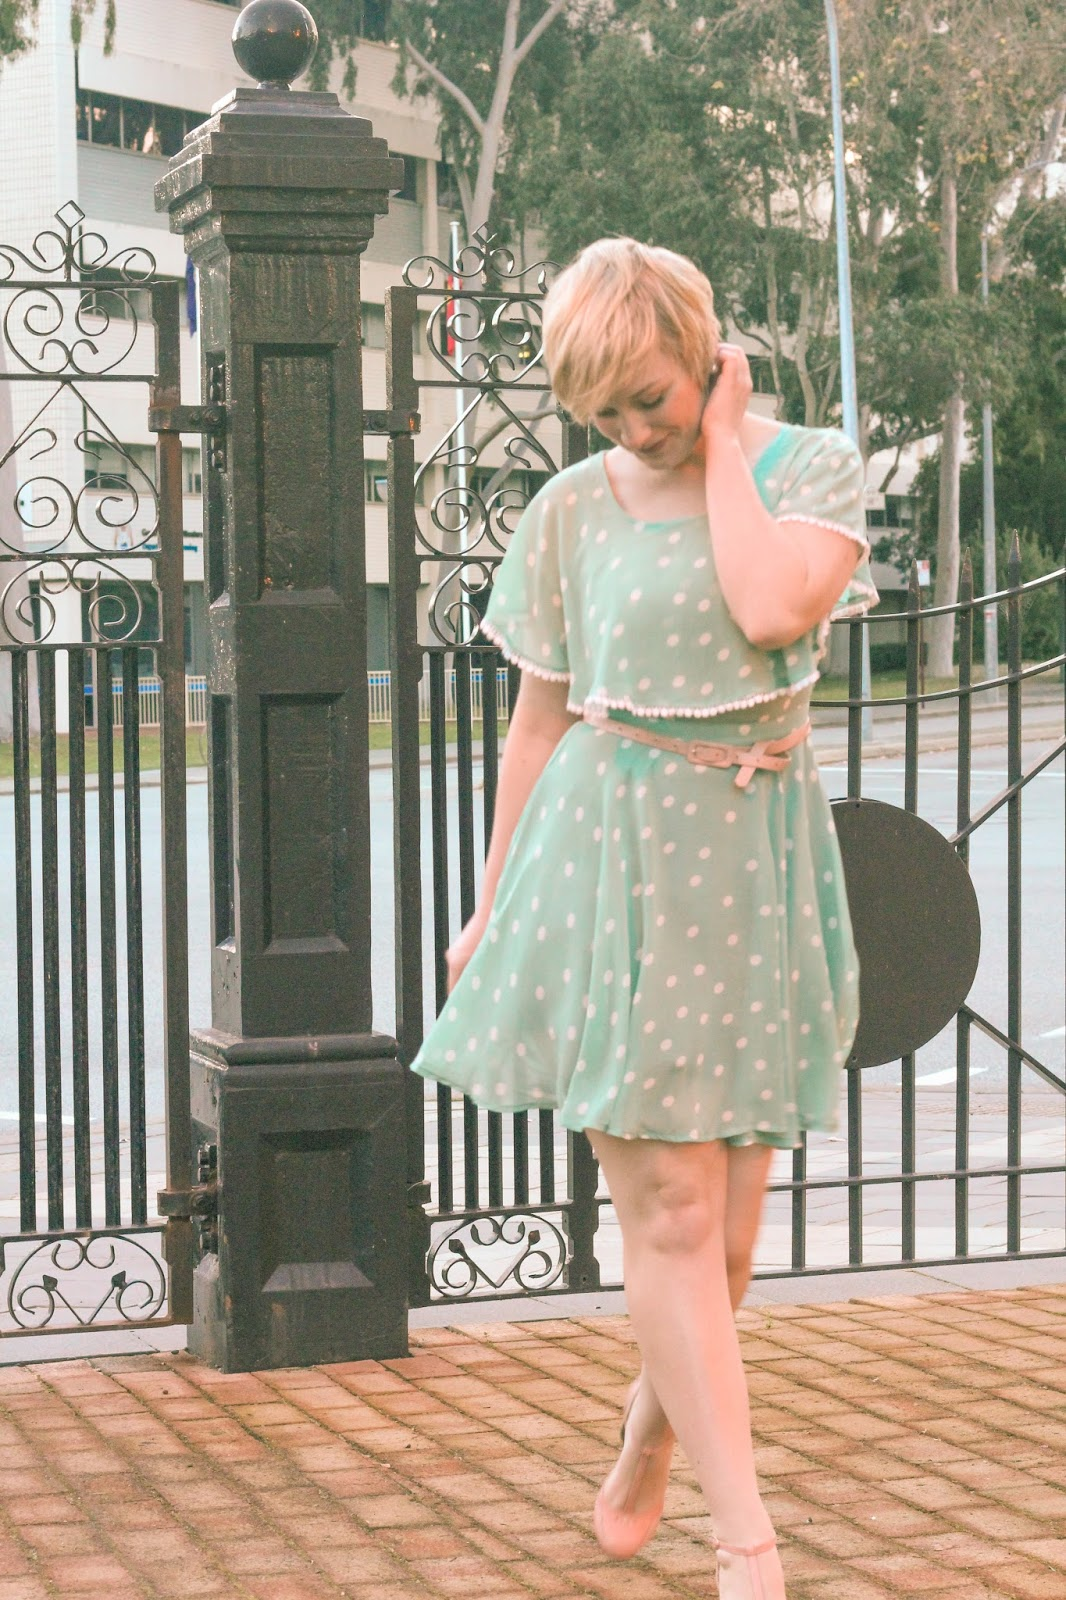 Liana of Finding Femme wears mint polka dot Modcloth dress, pint bettie page shoes and pixie cut.